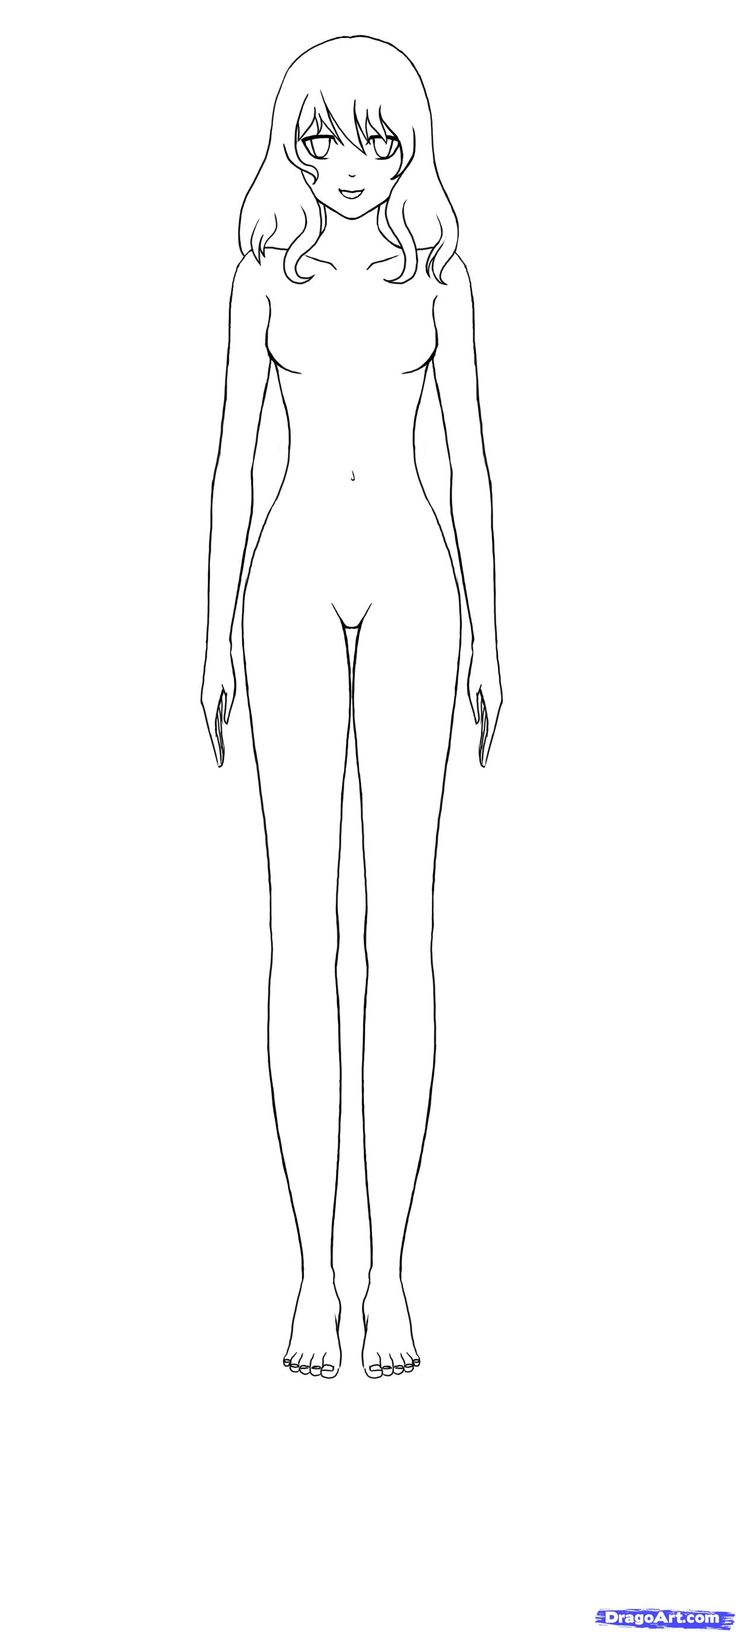 How To Draw Anime Bodies